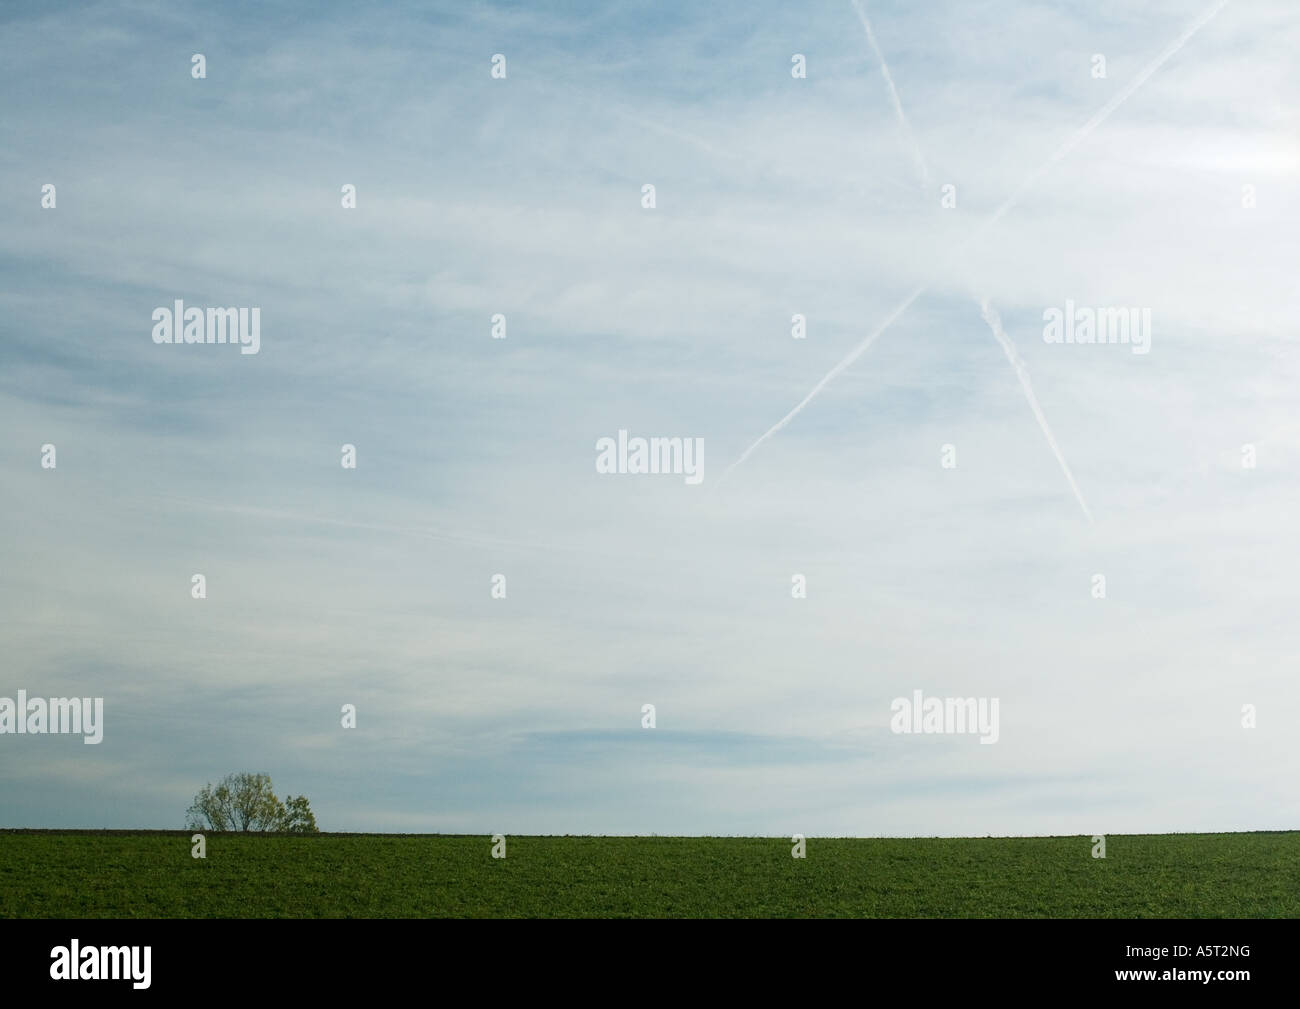 Sky with vapor trails forming 'X' and tree in distance - Stock Image